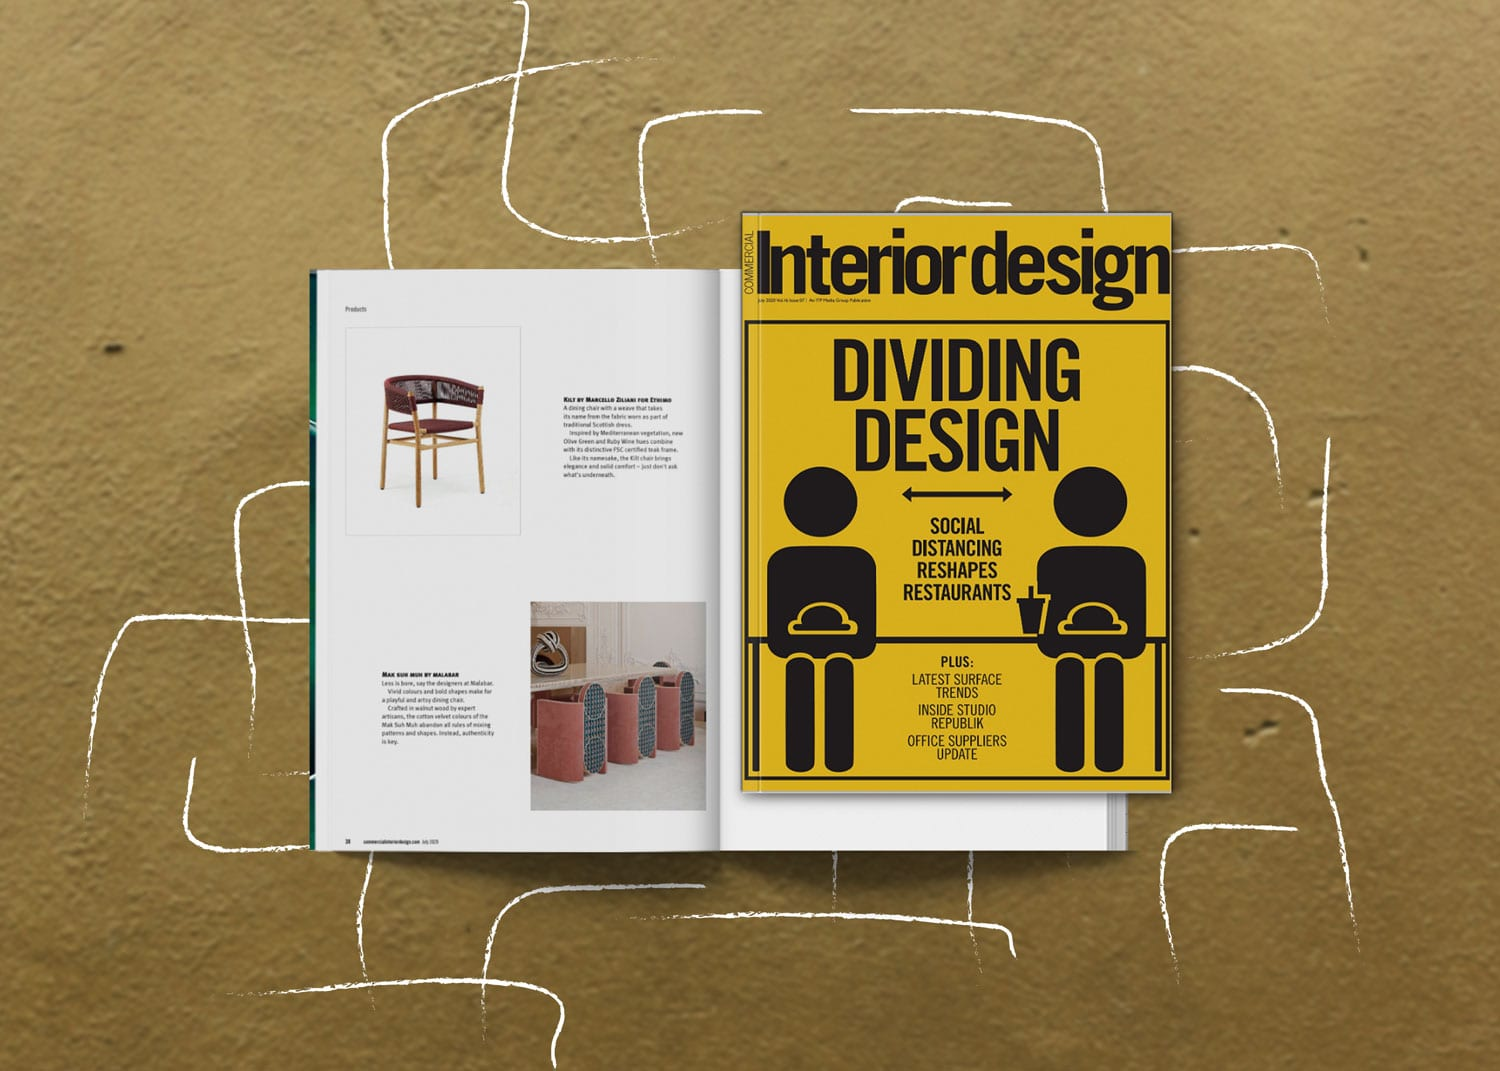 Mak suh muh dining chair at commercial interior design magazine